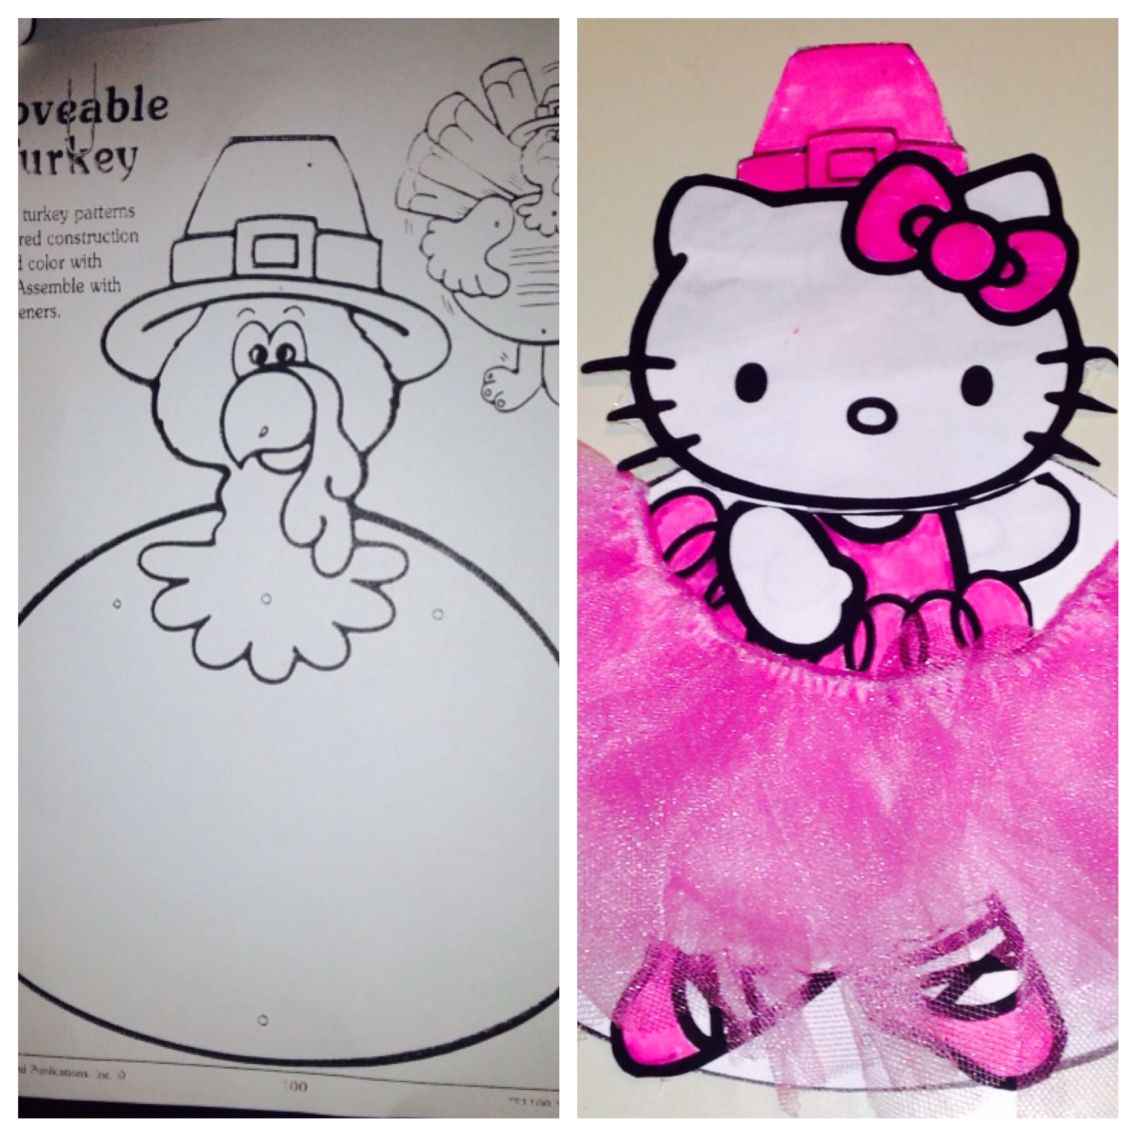 Disguised Tom The Turkey As A Hello Kitty Ballerina So He Won T Be